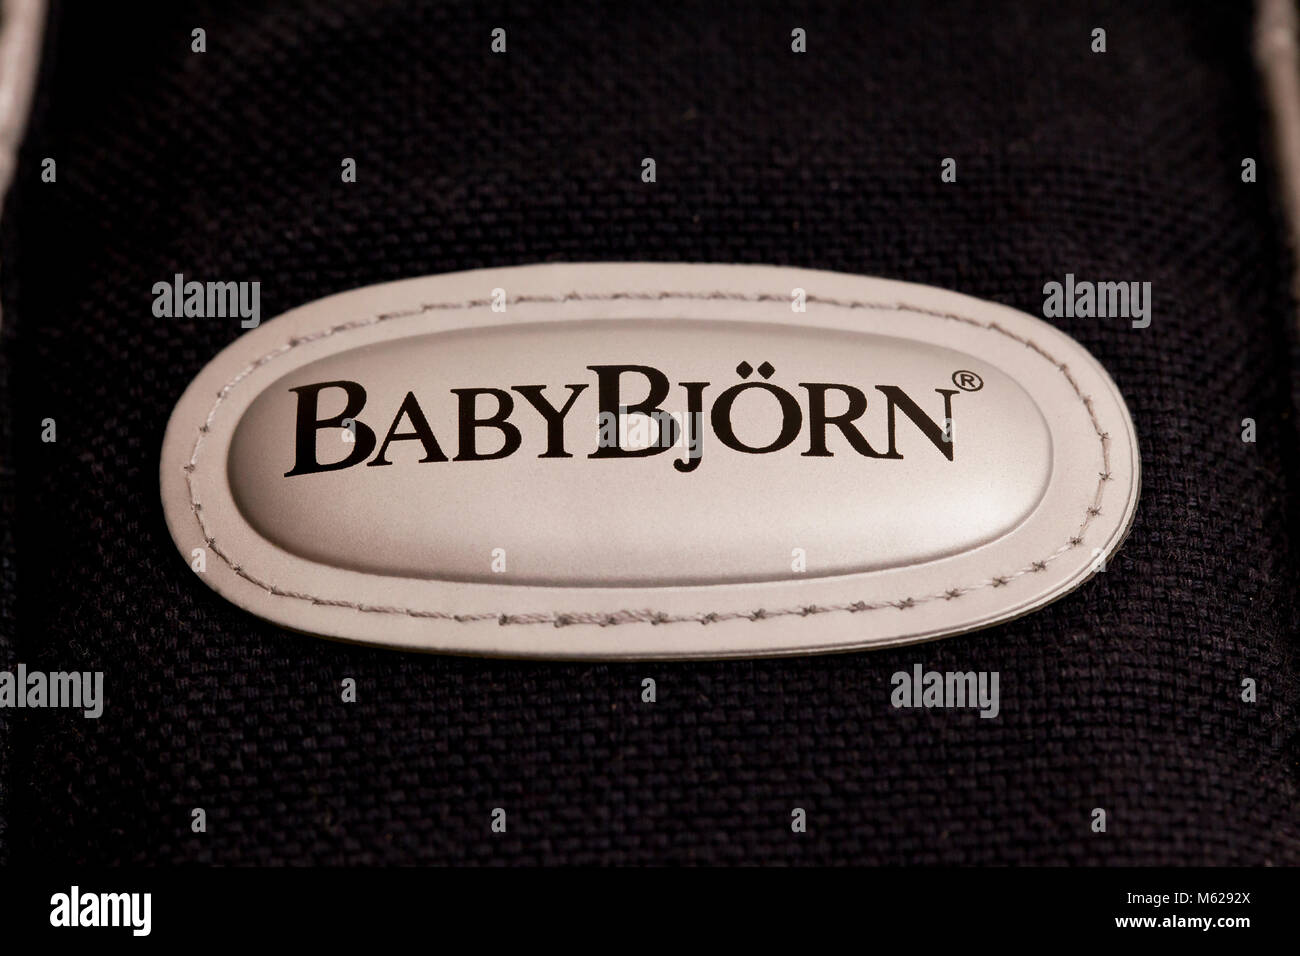 Baby Bjorn brand label on product - Stock Image